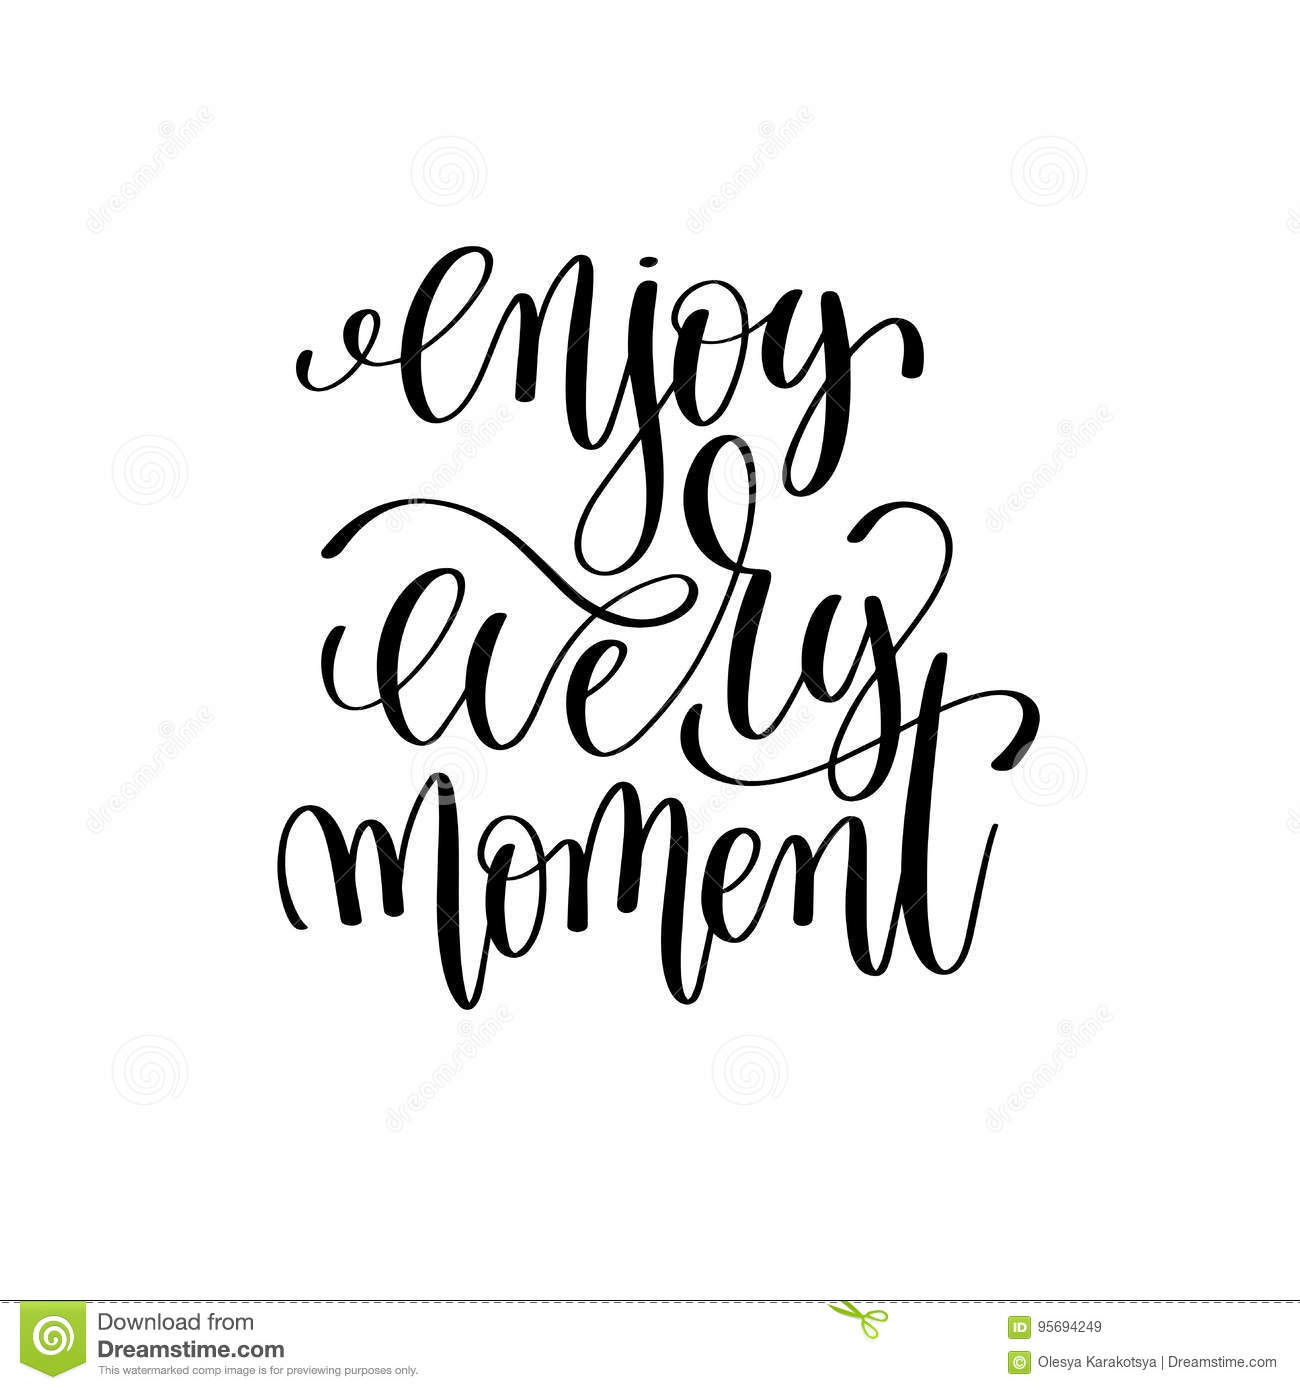 Enjoy every moment black and white ink lettering positive quote